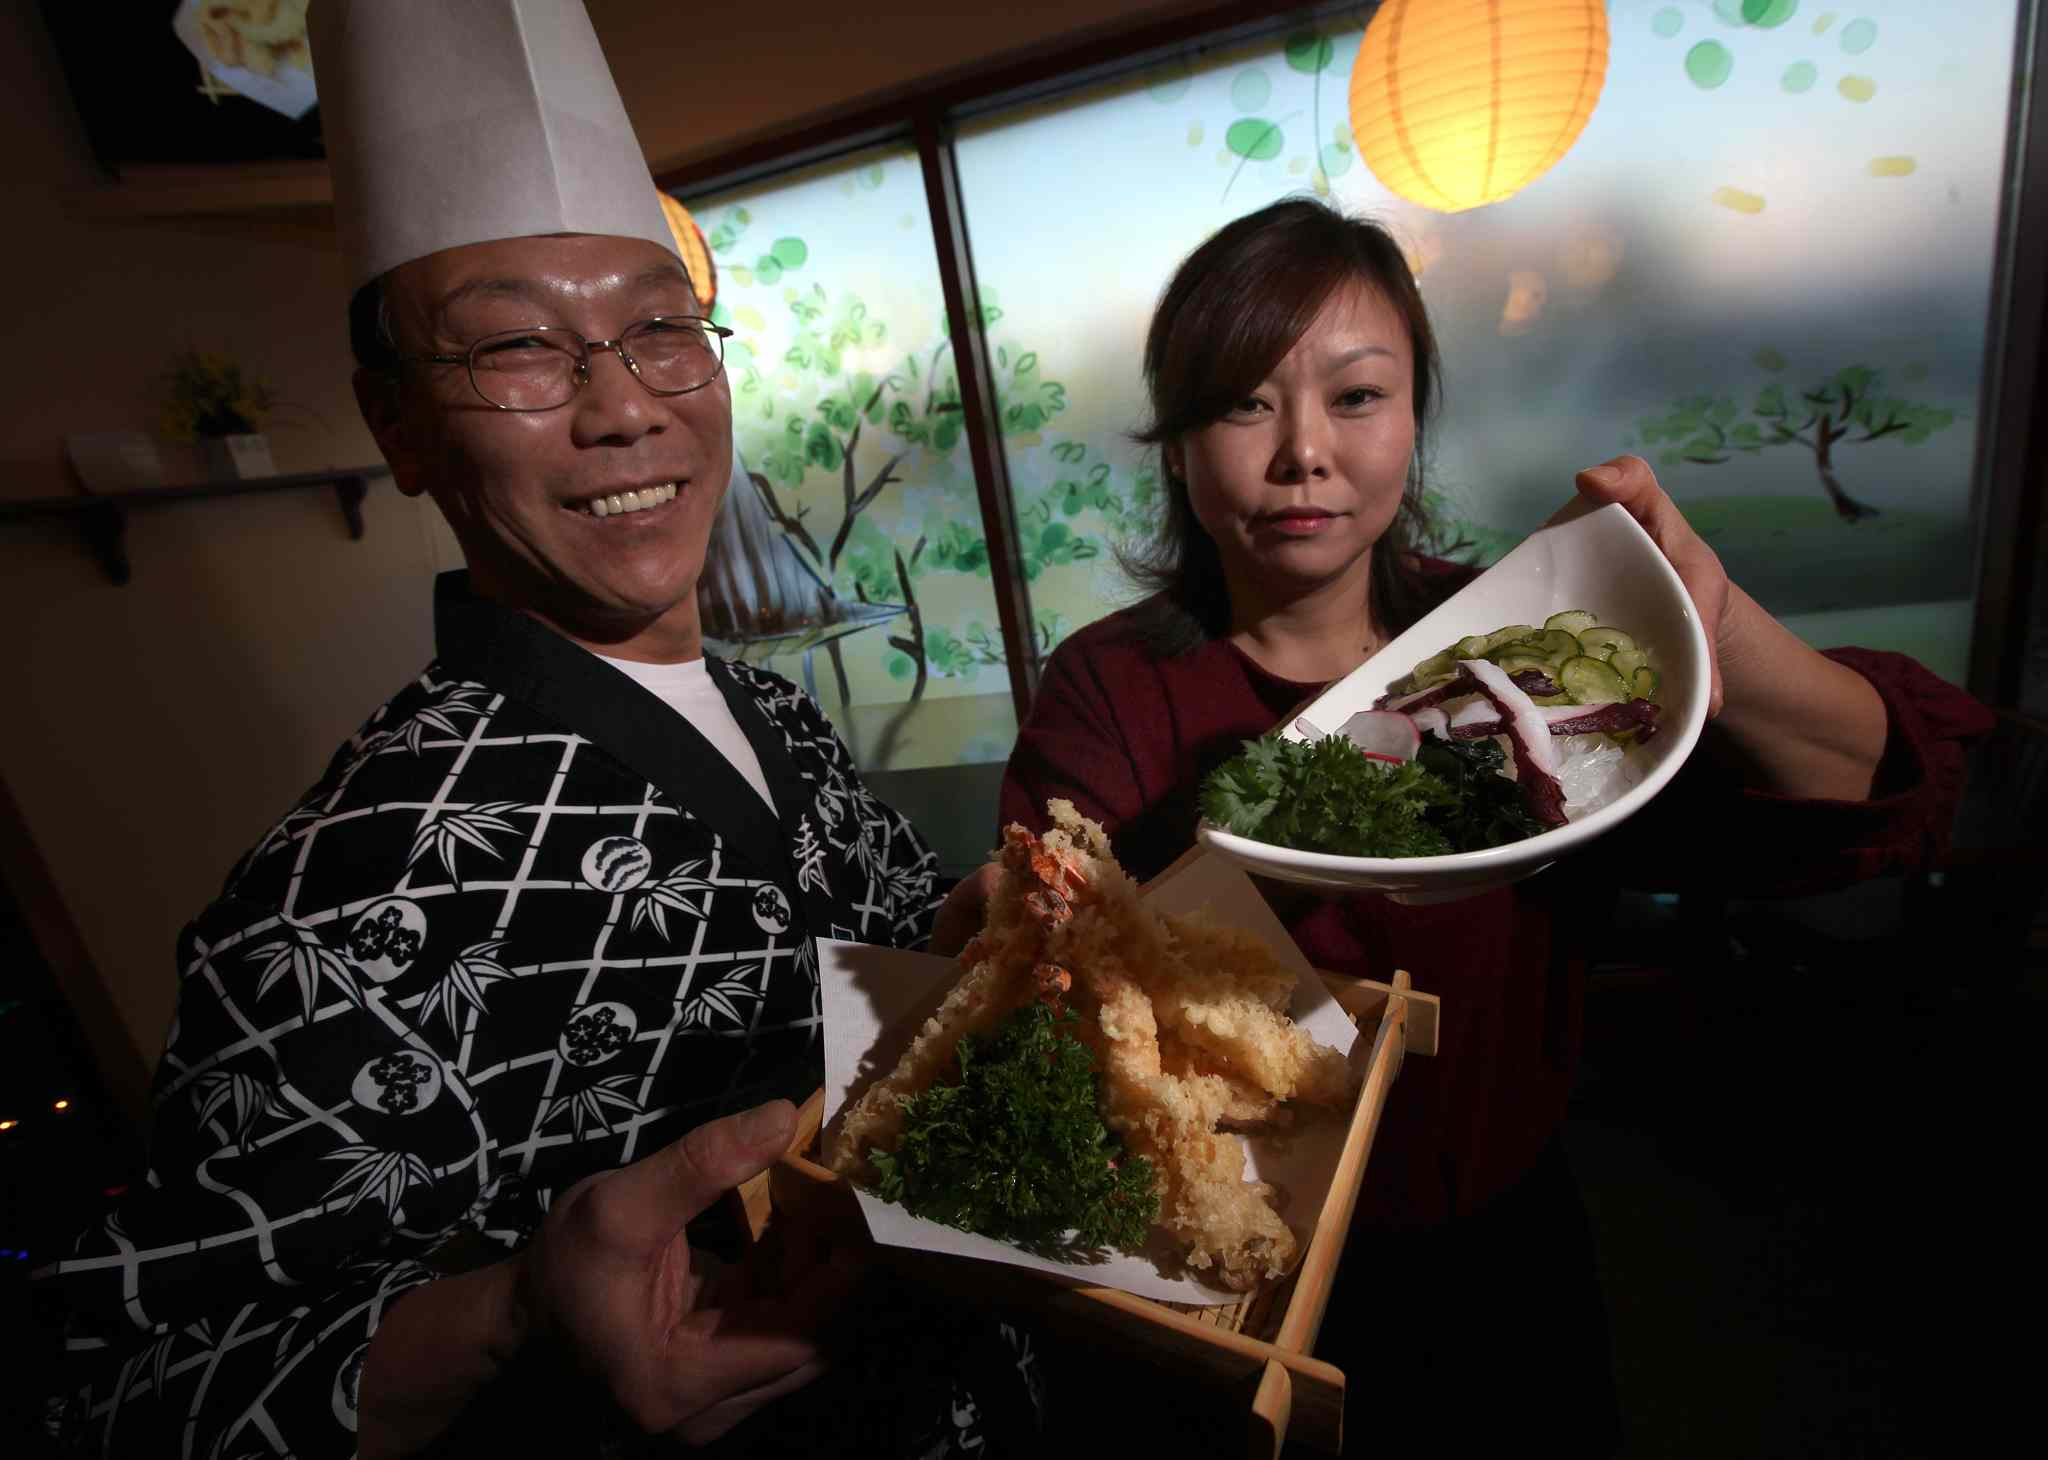 Chef Doeyeong Kang (left) and his wife Hyunhee Park with shrimp tempura and sunomono salad.